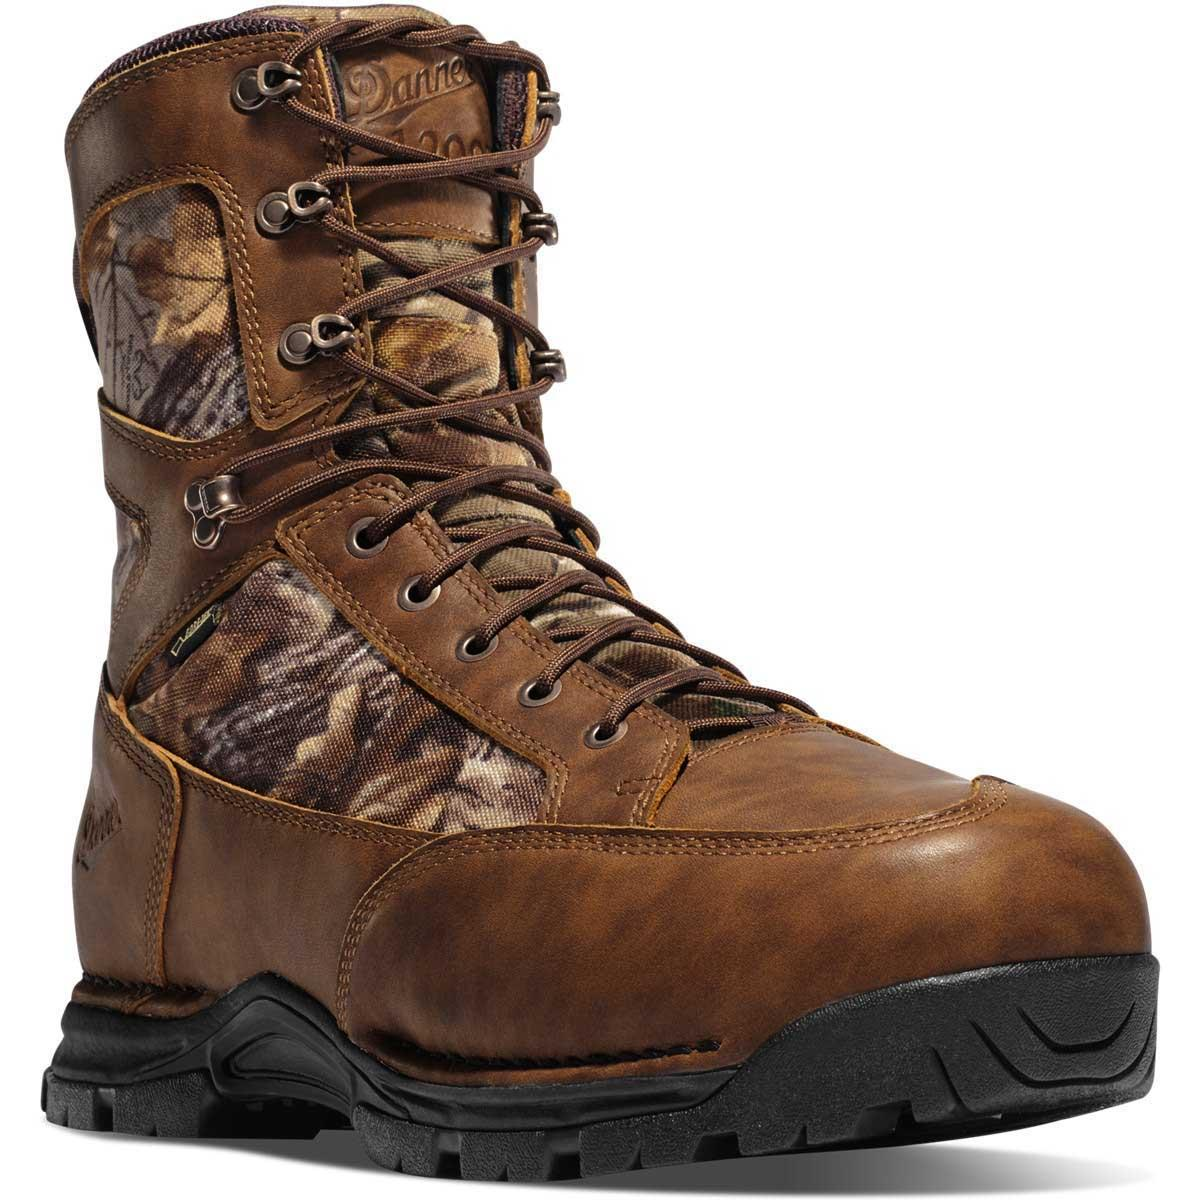 """Danner Pronghorn 8"""" Realtree Xtra Insulated 1200G Hunting Boots"""